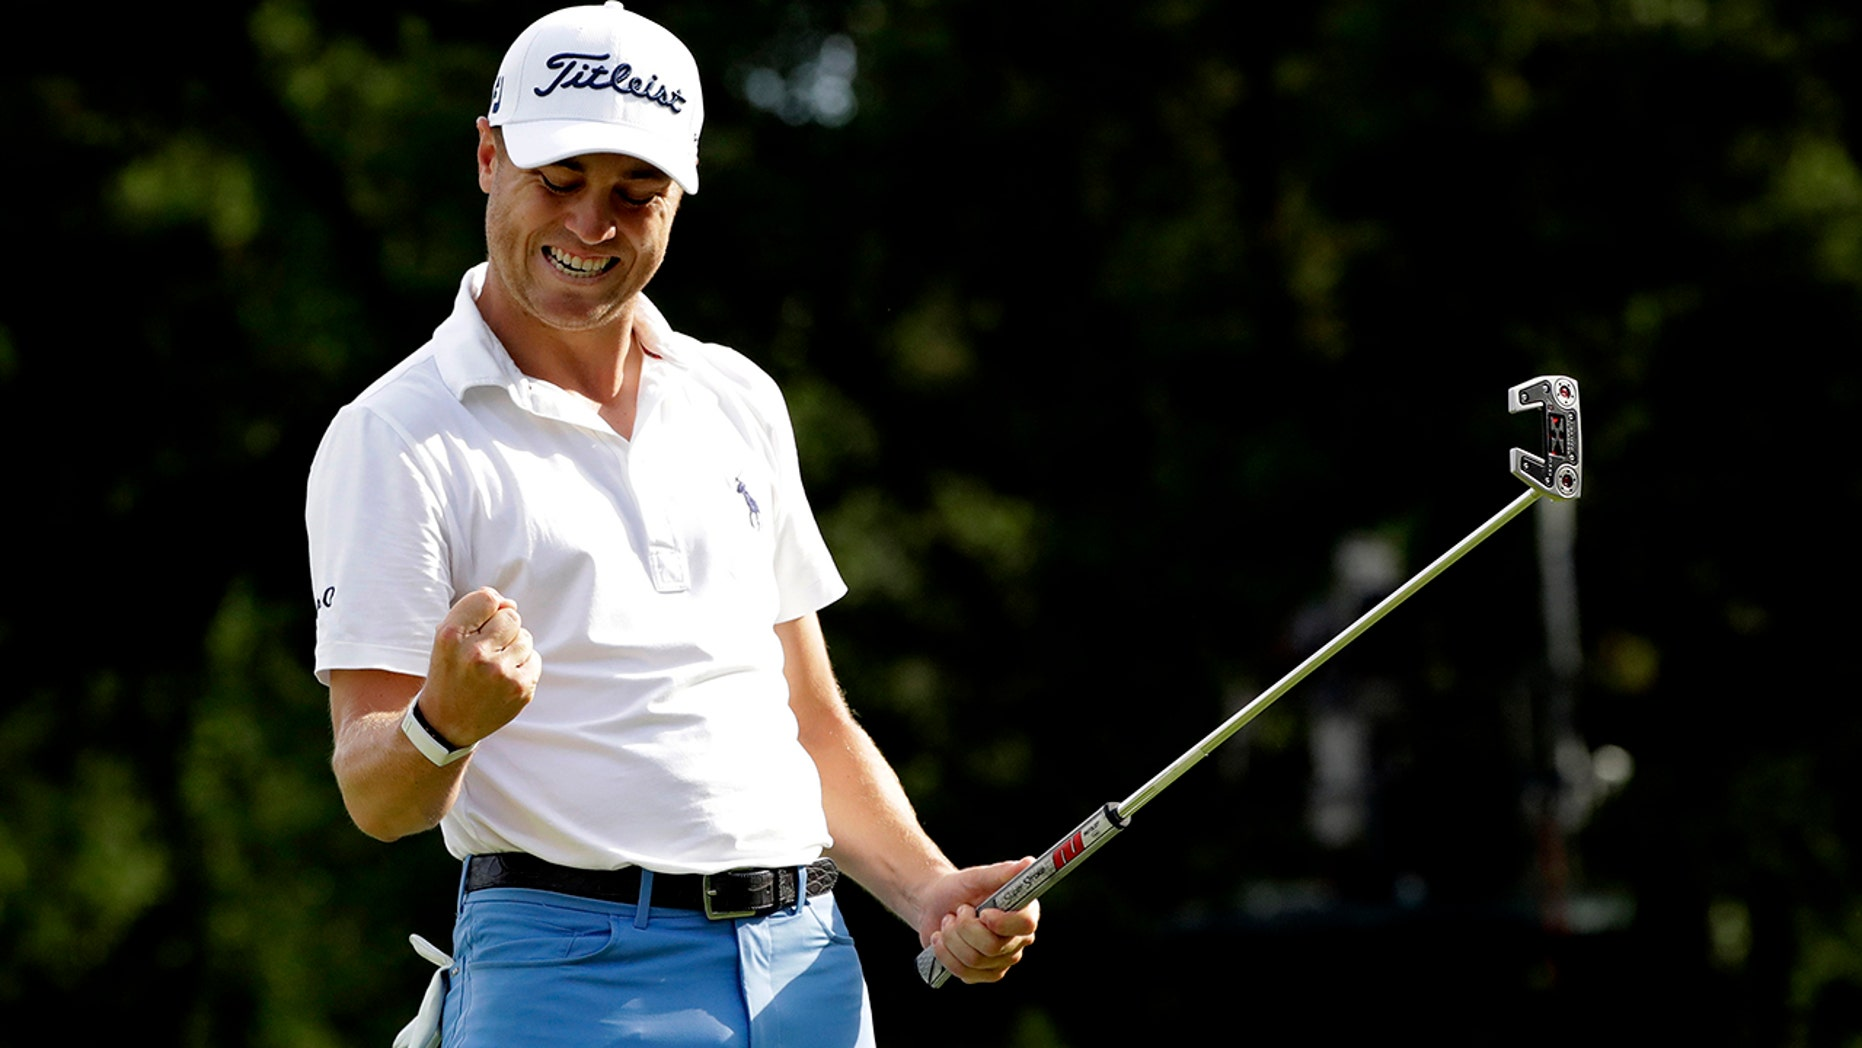 Justin Thomas celebrates after making a birdie on the 18th green during the final round at the BMW Championship golf tournament at Medinah Country Club, Sunday, Aug. 18, 2019, in Medinah, Ill. (AP Photo/Nam Y. Huh)